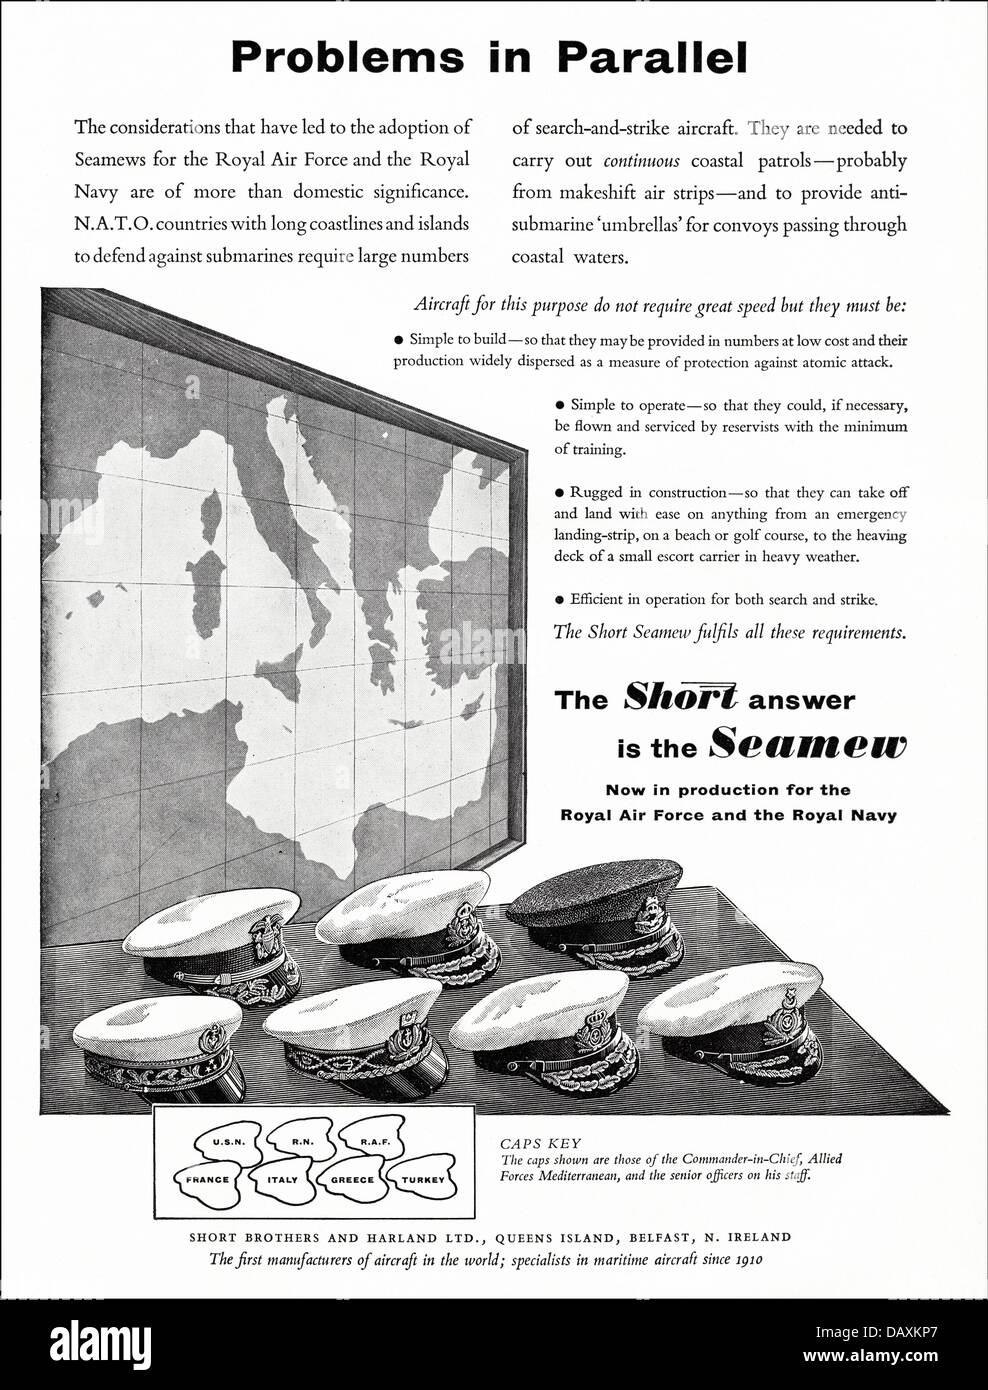 Advert for Seamew anti-submarine aircraft by Short Brothers and Harland Ltd Belfast N. Ireland UK suppliers to the - Stock Image